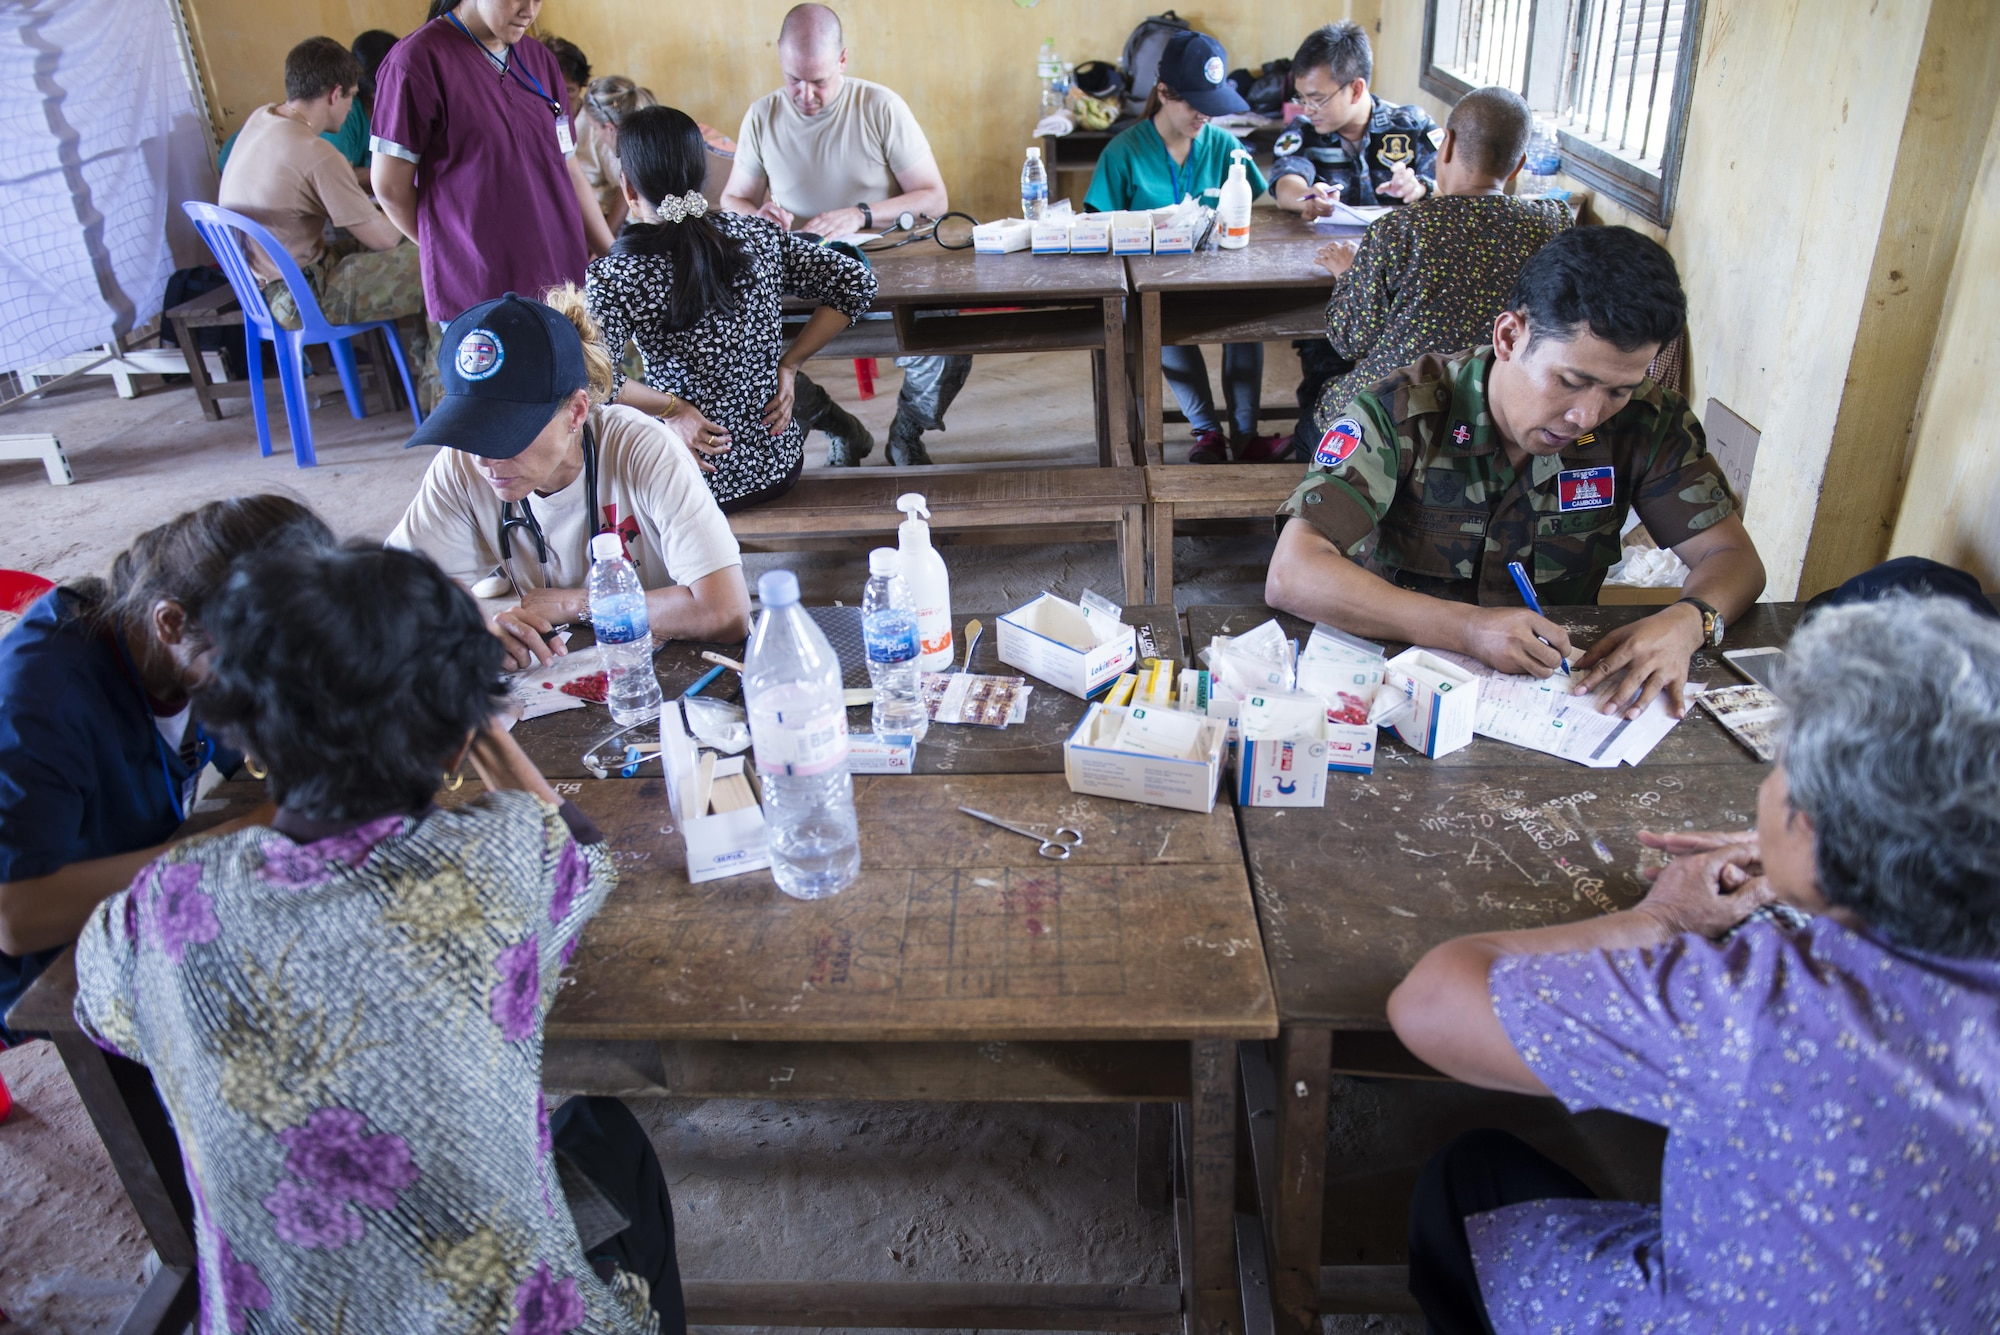 Royal Cambodian Armed Forces medical professionals work as a team alongside U.S. Armed Forces medical professionals to provide care to patients during Pacific Angel 16-2, June 14, 2016, in Kampot Province, Cambodia. The Pacific Angel 16-2 medical team is made up of military health practitioners from the Cambodia Armed Forces, U.S. Armed Forces, Thai Royal Air Force, Australian Royal Air Force and Vietnamese Royal Air Force. Non-governmental organizations such as Project Hope and East Meets West also helped by supplying translators and medics as well.  The U.S. military seeks opportunities to strengthen its relationship with other nations' militaries through activities such as subject-matter expert exchanges, host nation visits, and bilateral engagements. (U.S. Air Force photo by Senior Airman Omari Bernard/released)